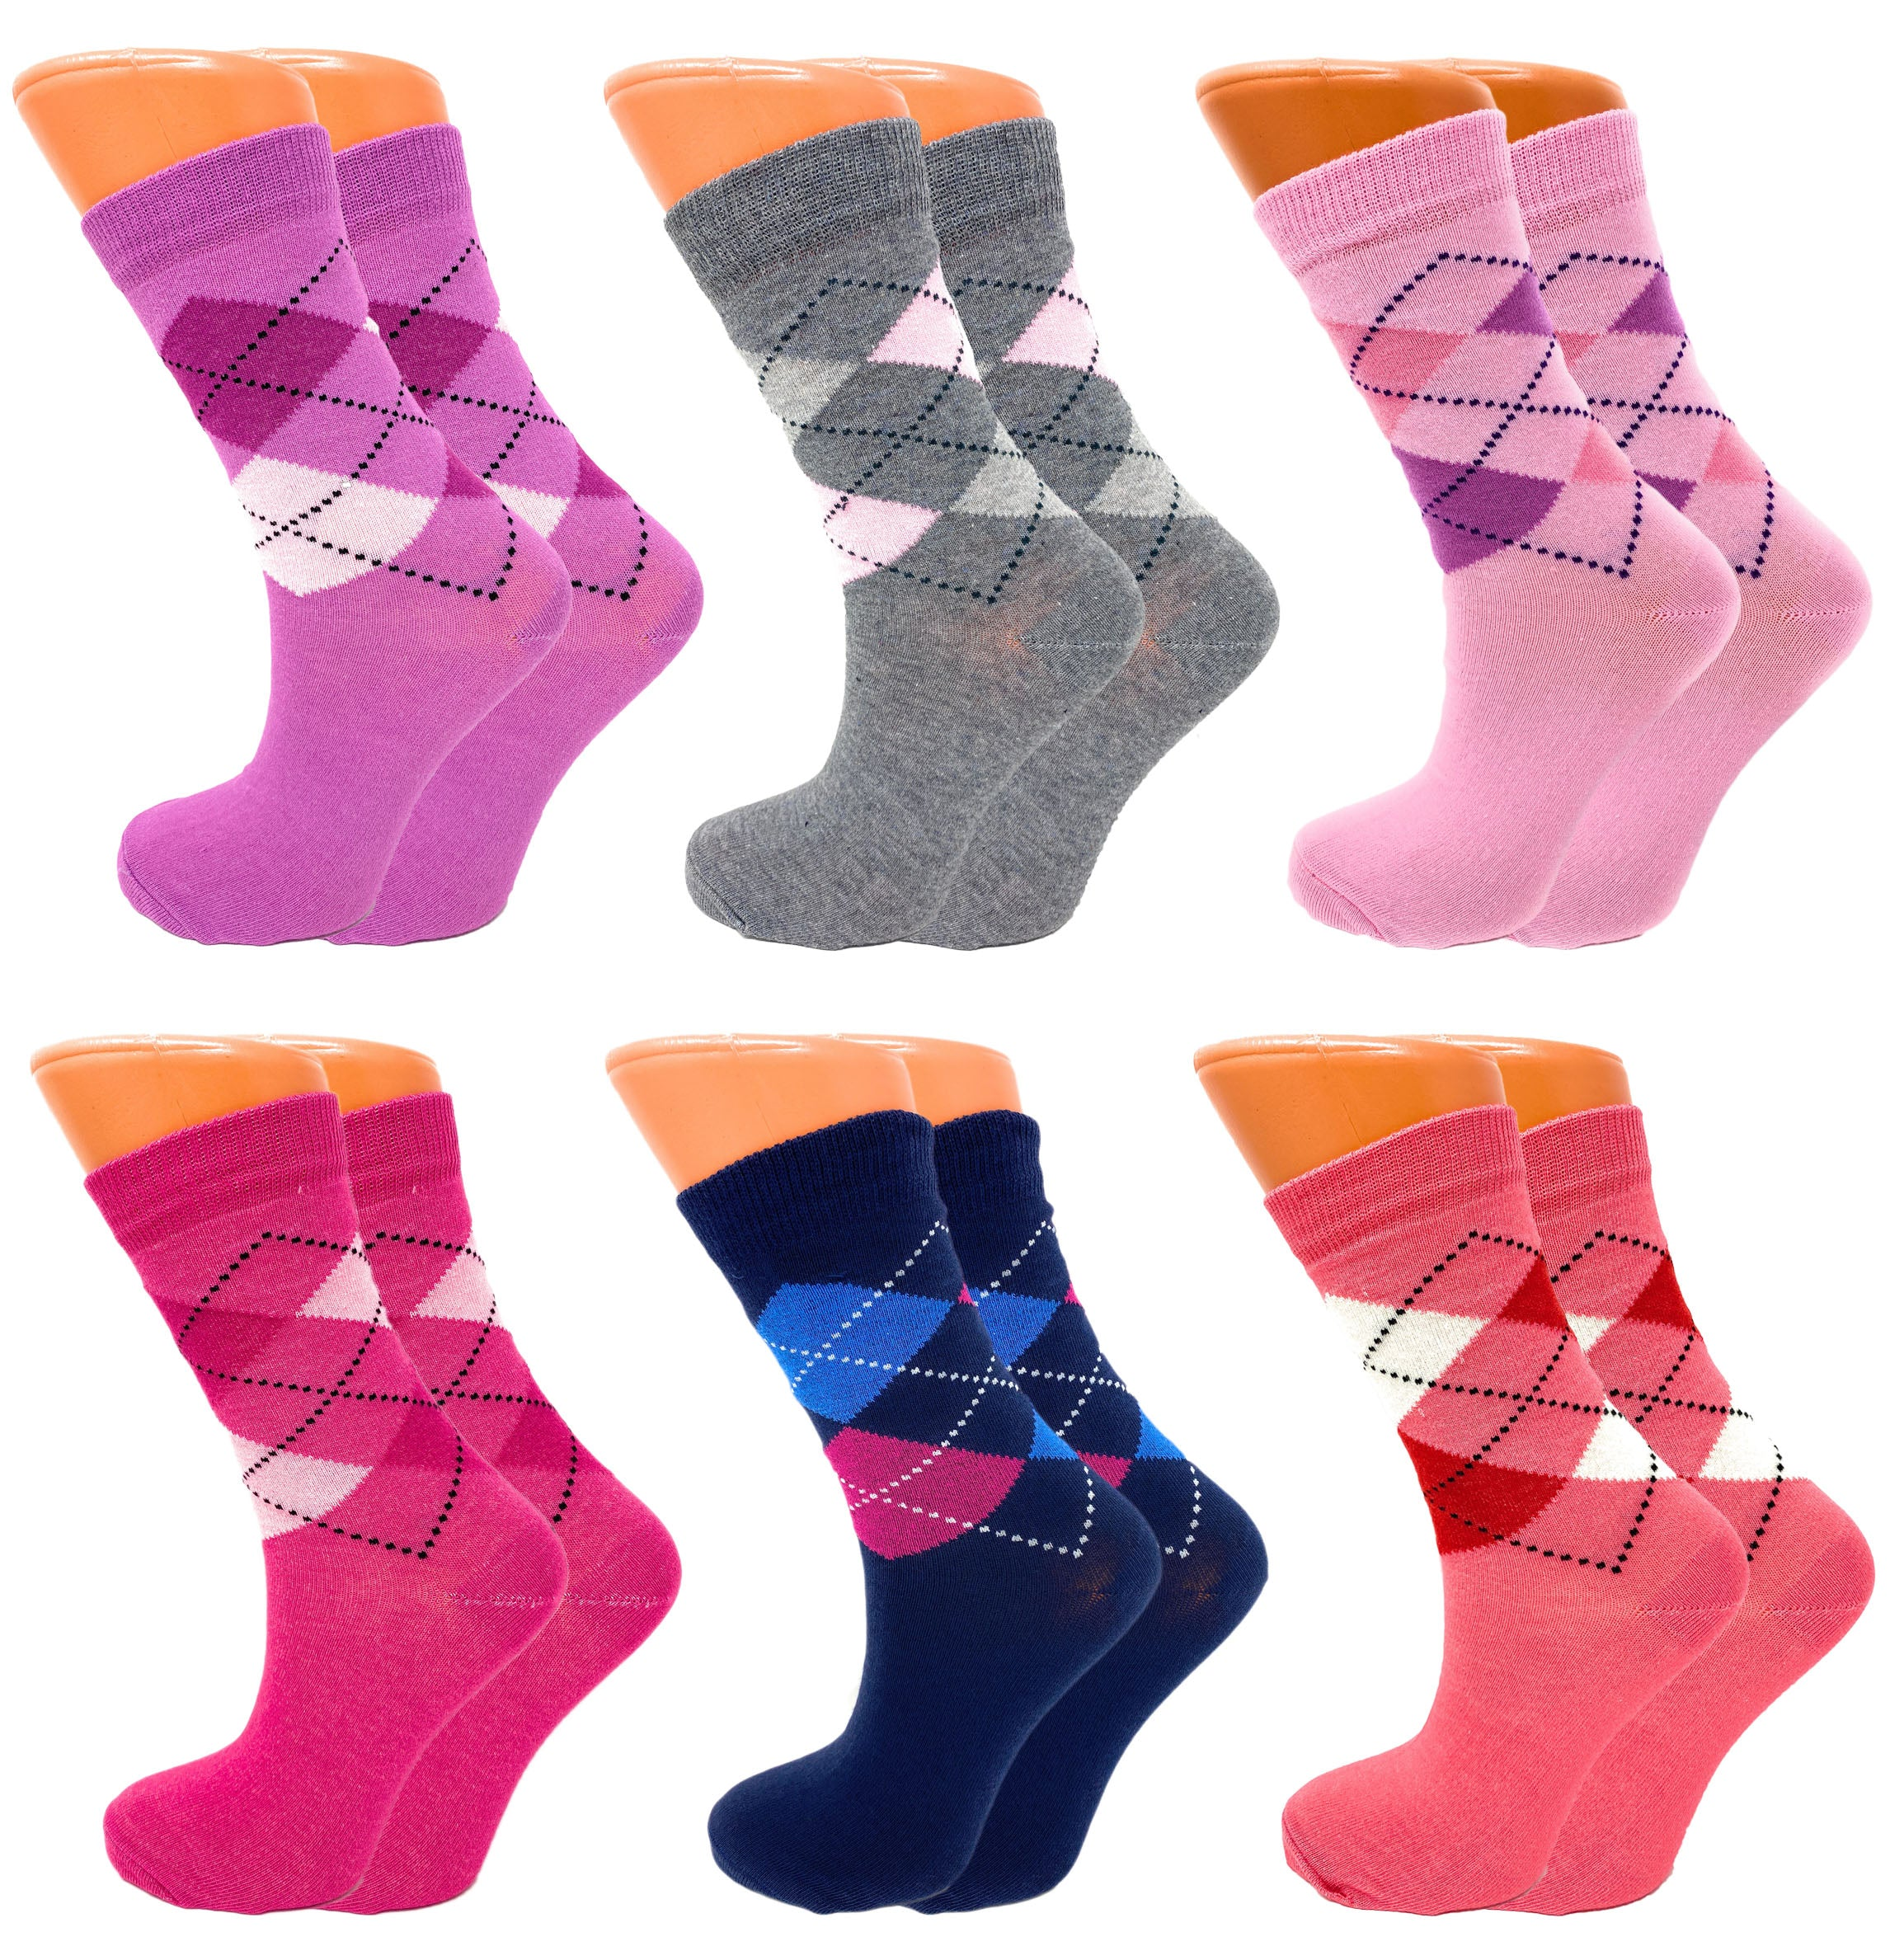 Details about  /Luxury Combed Cotton Crew Socks for Women Colorful 6 Pairs Size 9-11